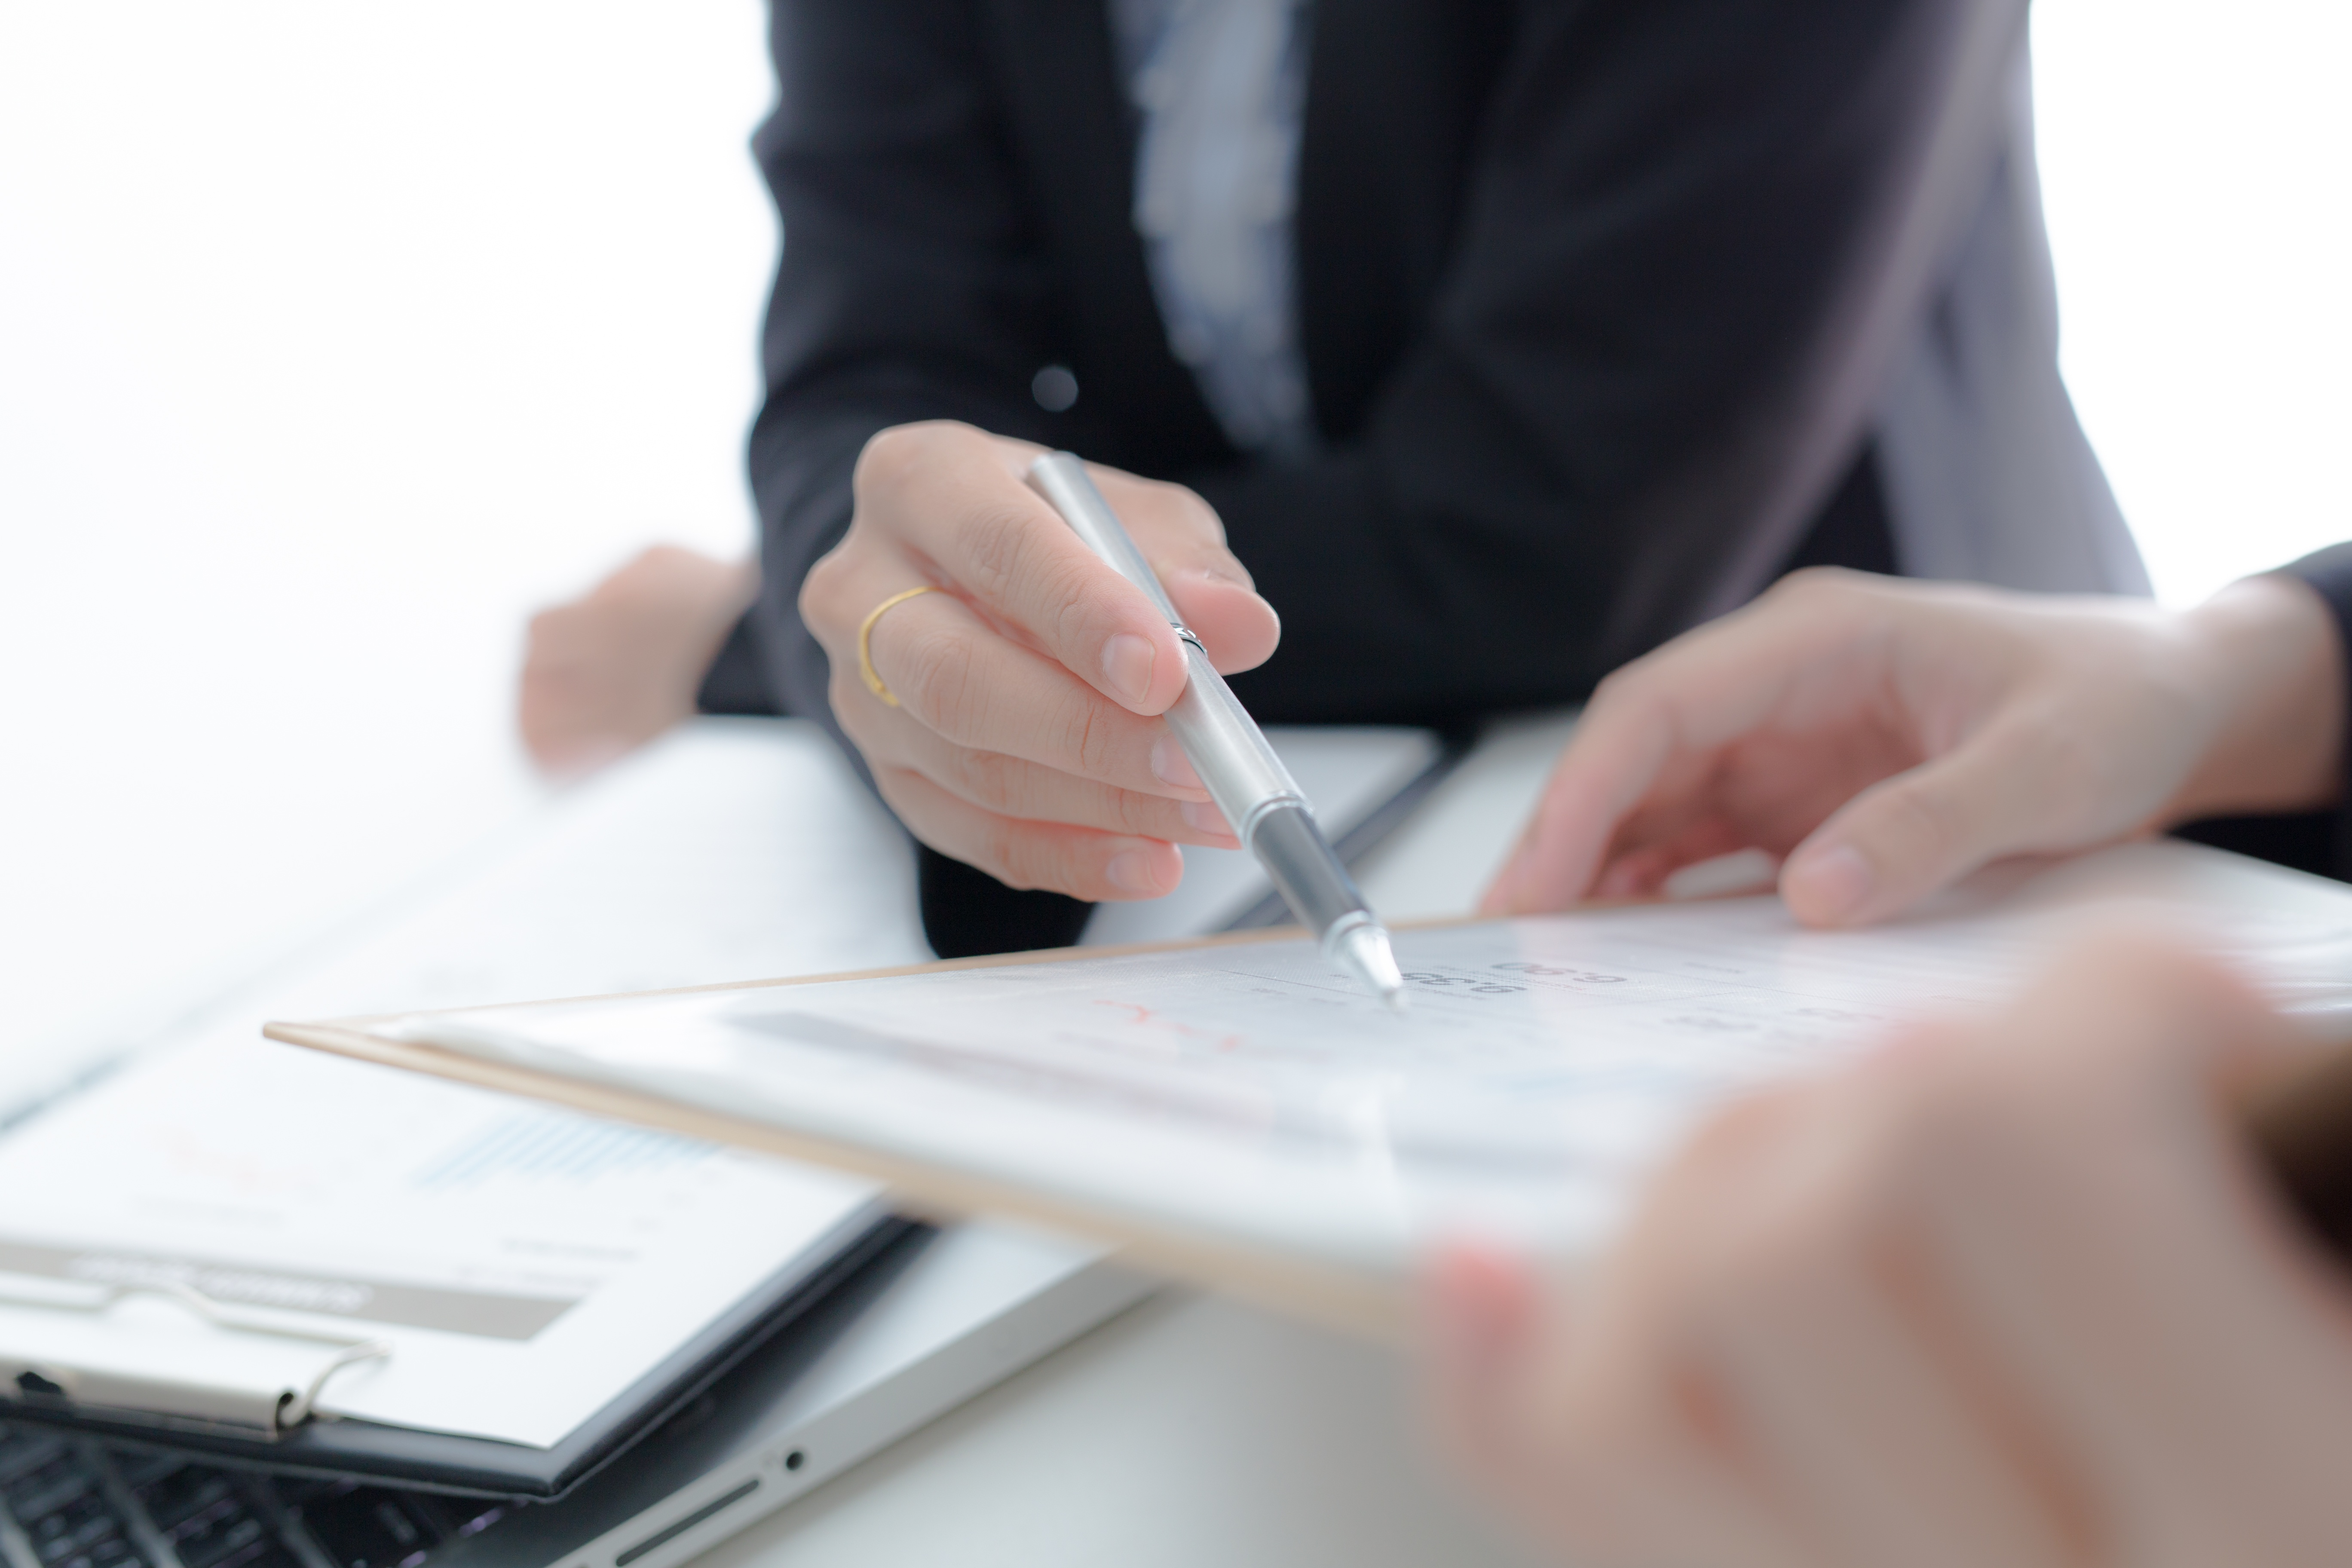 Small Business Lending Sees Uptick in Activity